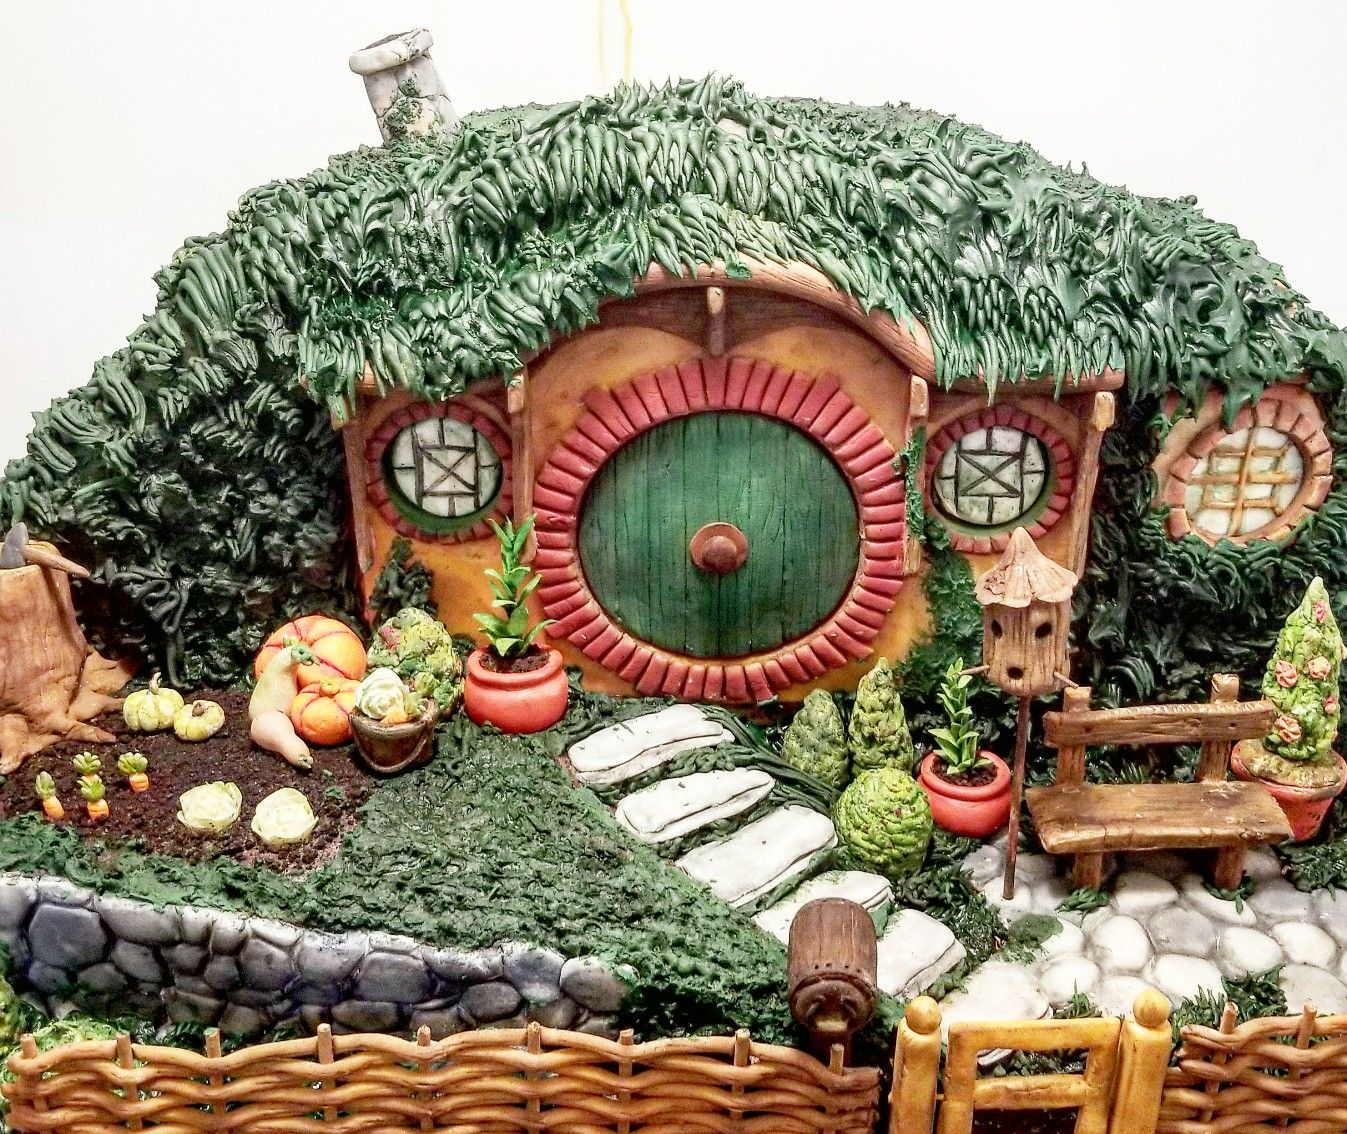 Bilbo Baggins Hobbit Hole. Entirely Edible And Close To